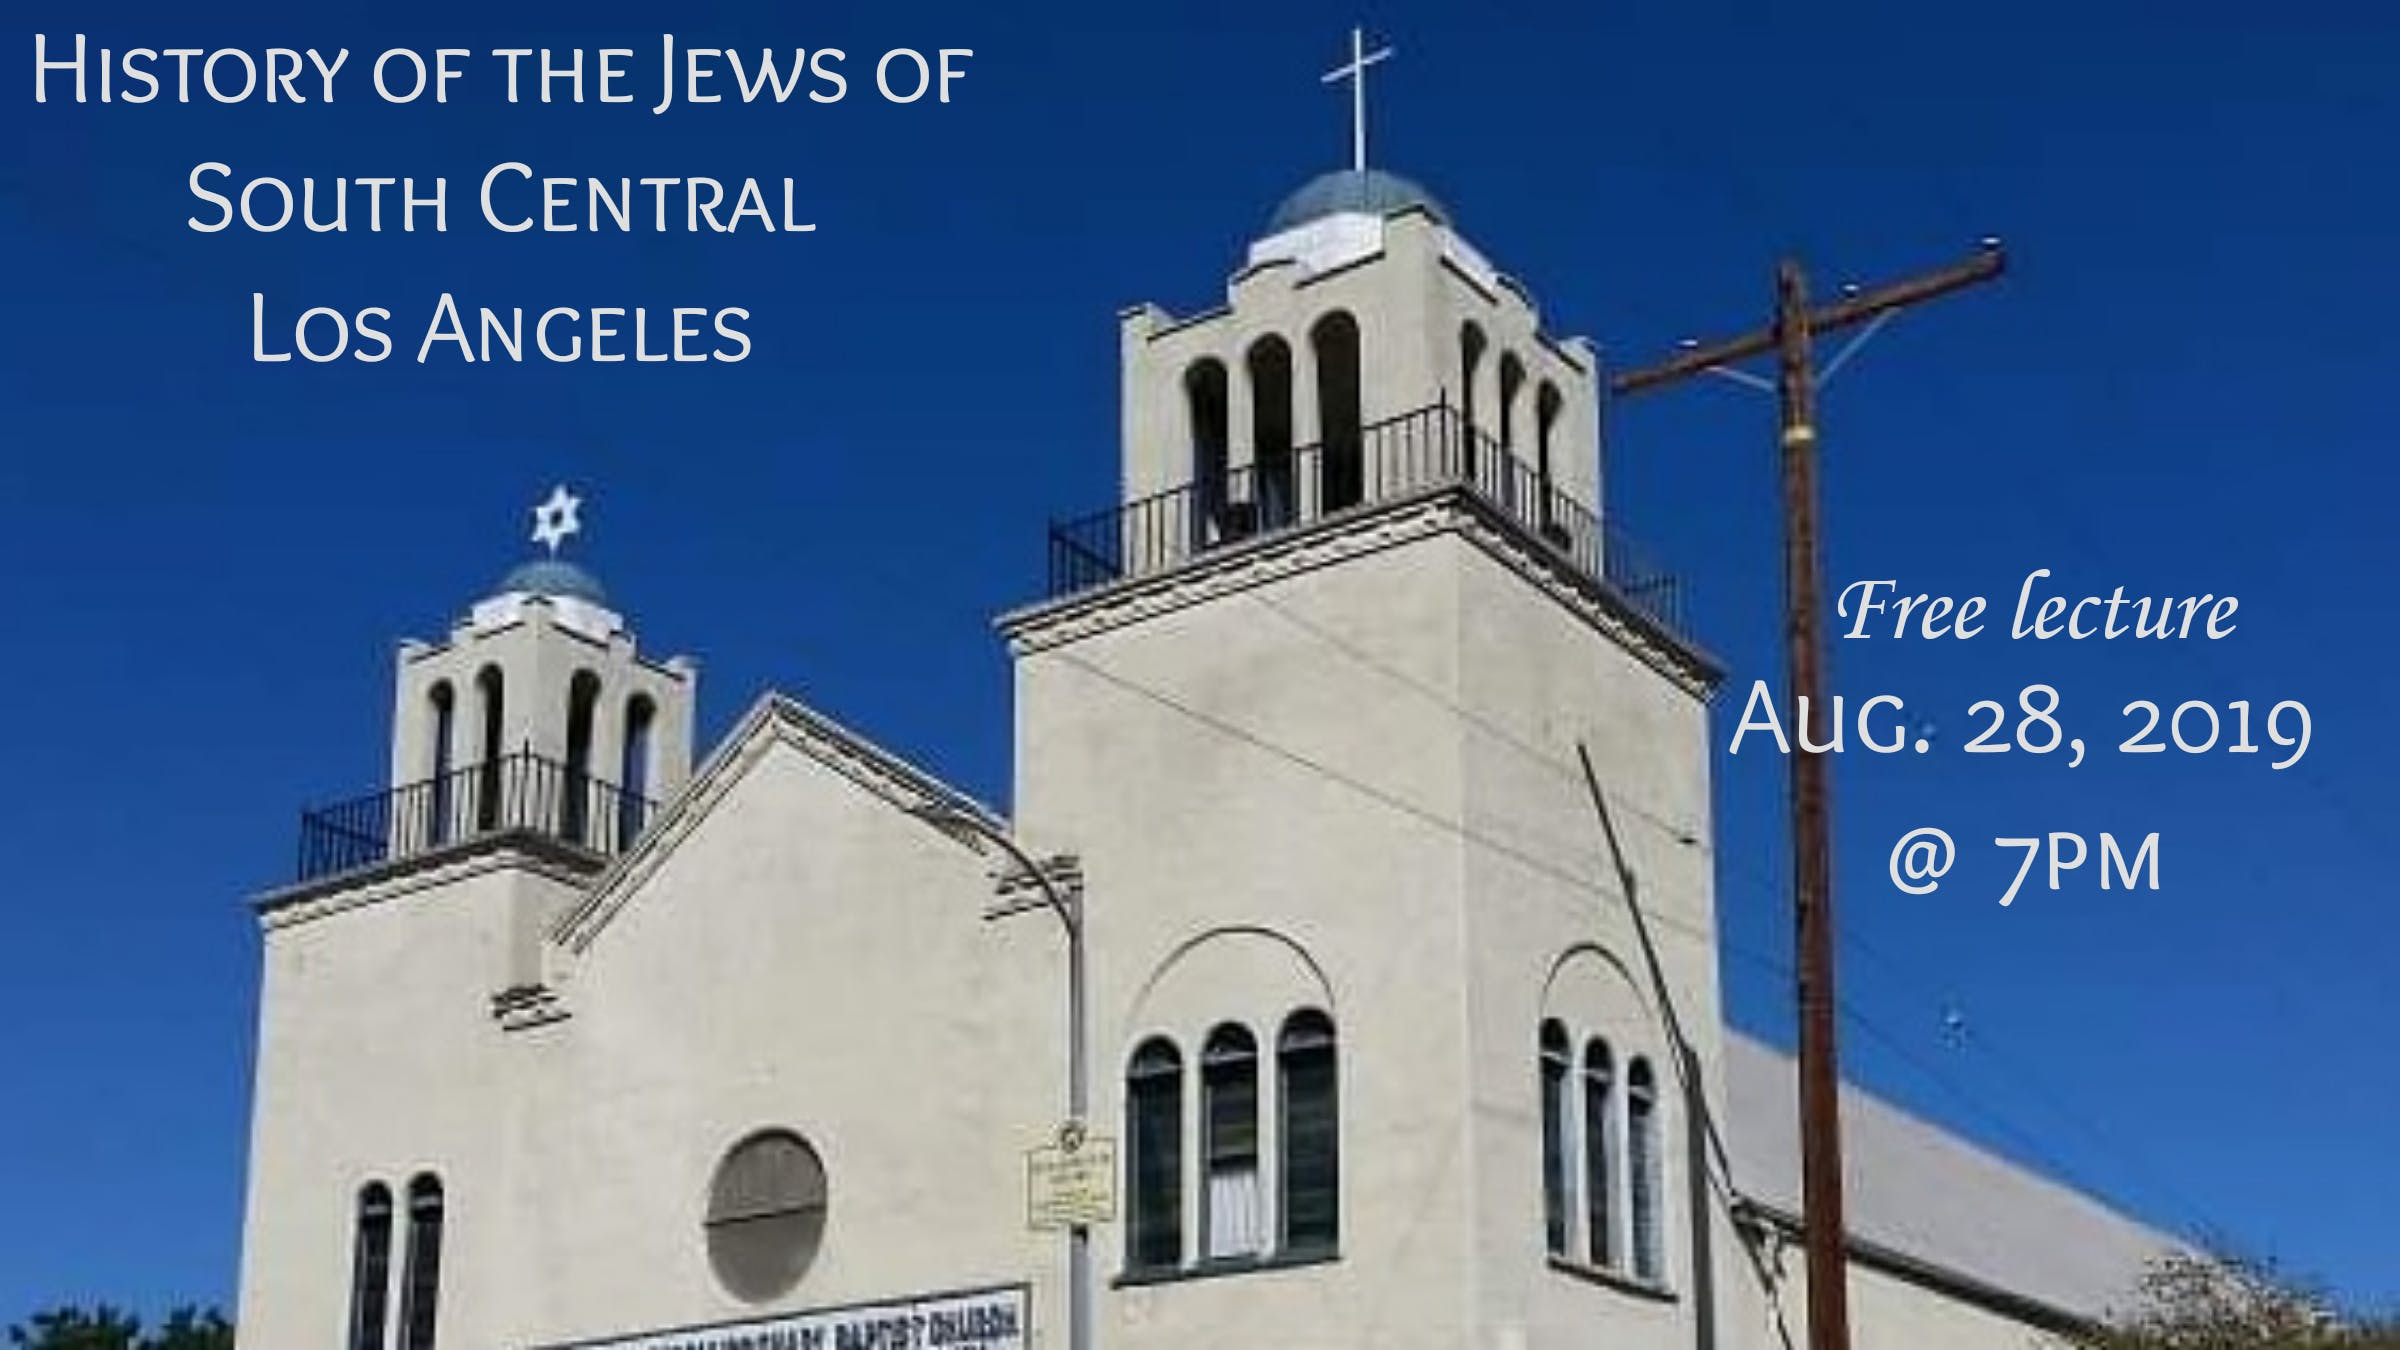 History of the Jews of South Central Los Angeles